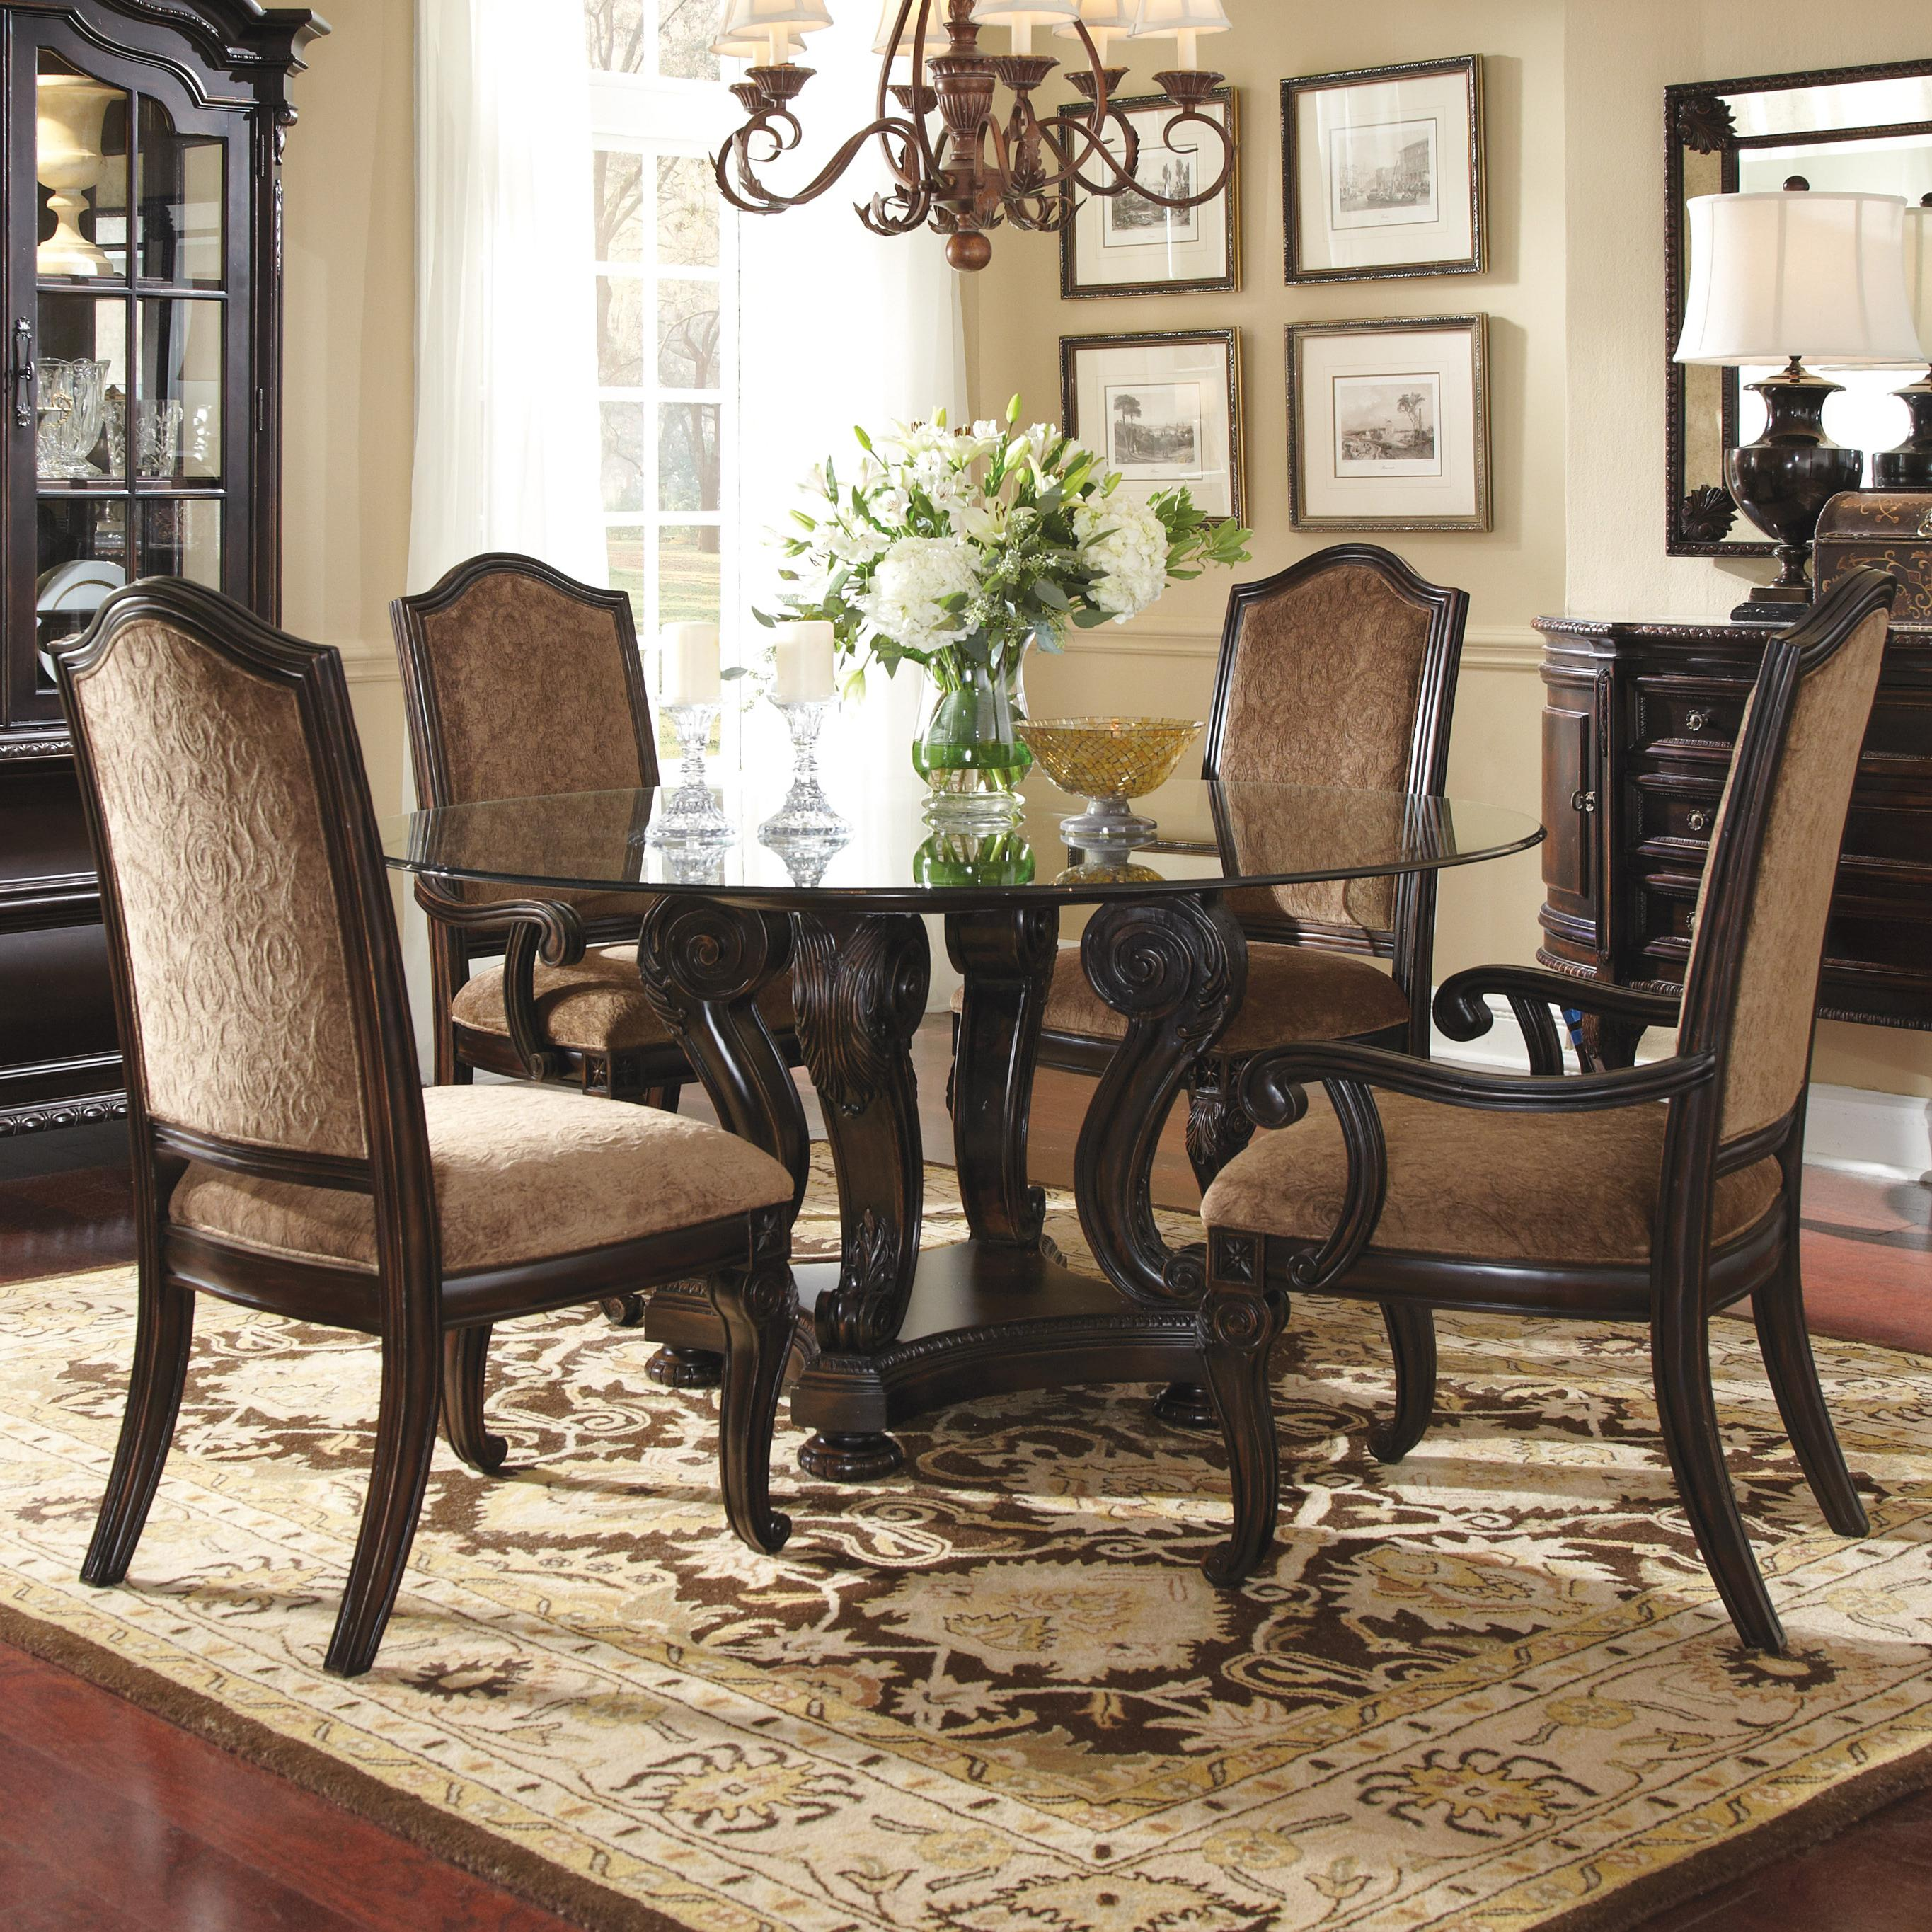 Cheap Round Dining Room Table For 8 With Dining Room Currently Viewing Kitchen Round Table Design Inspiration Decoration Ravishing Bronze Chandelier Over High Bak Chairs Set And Large Wood Dinner Table Design Ideas Interior Design Interiors